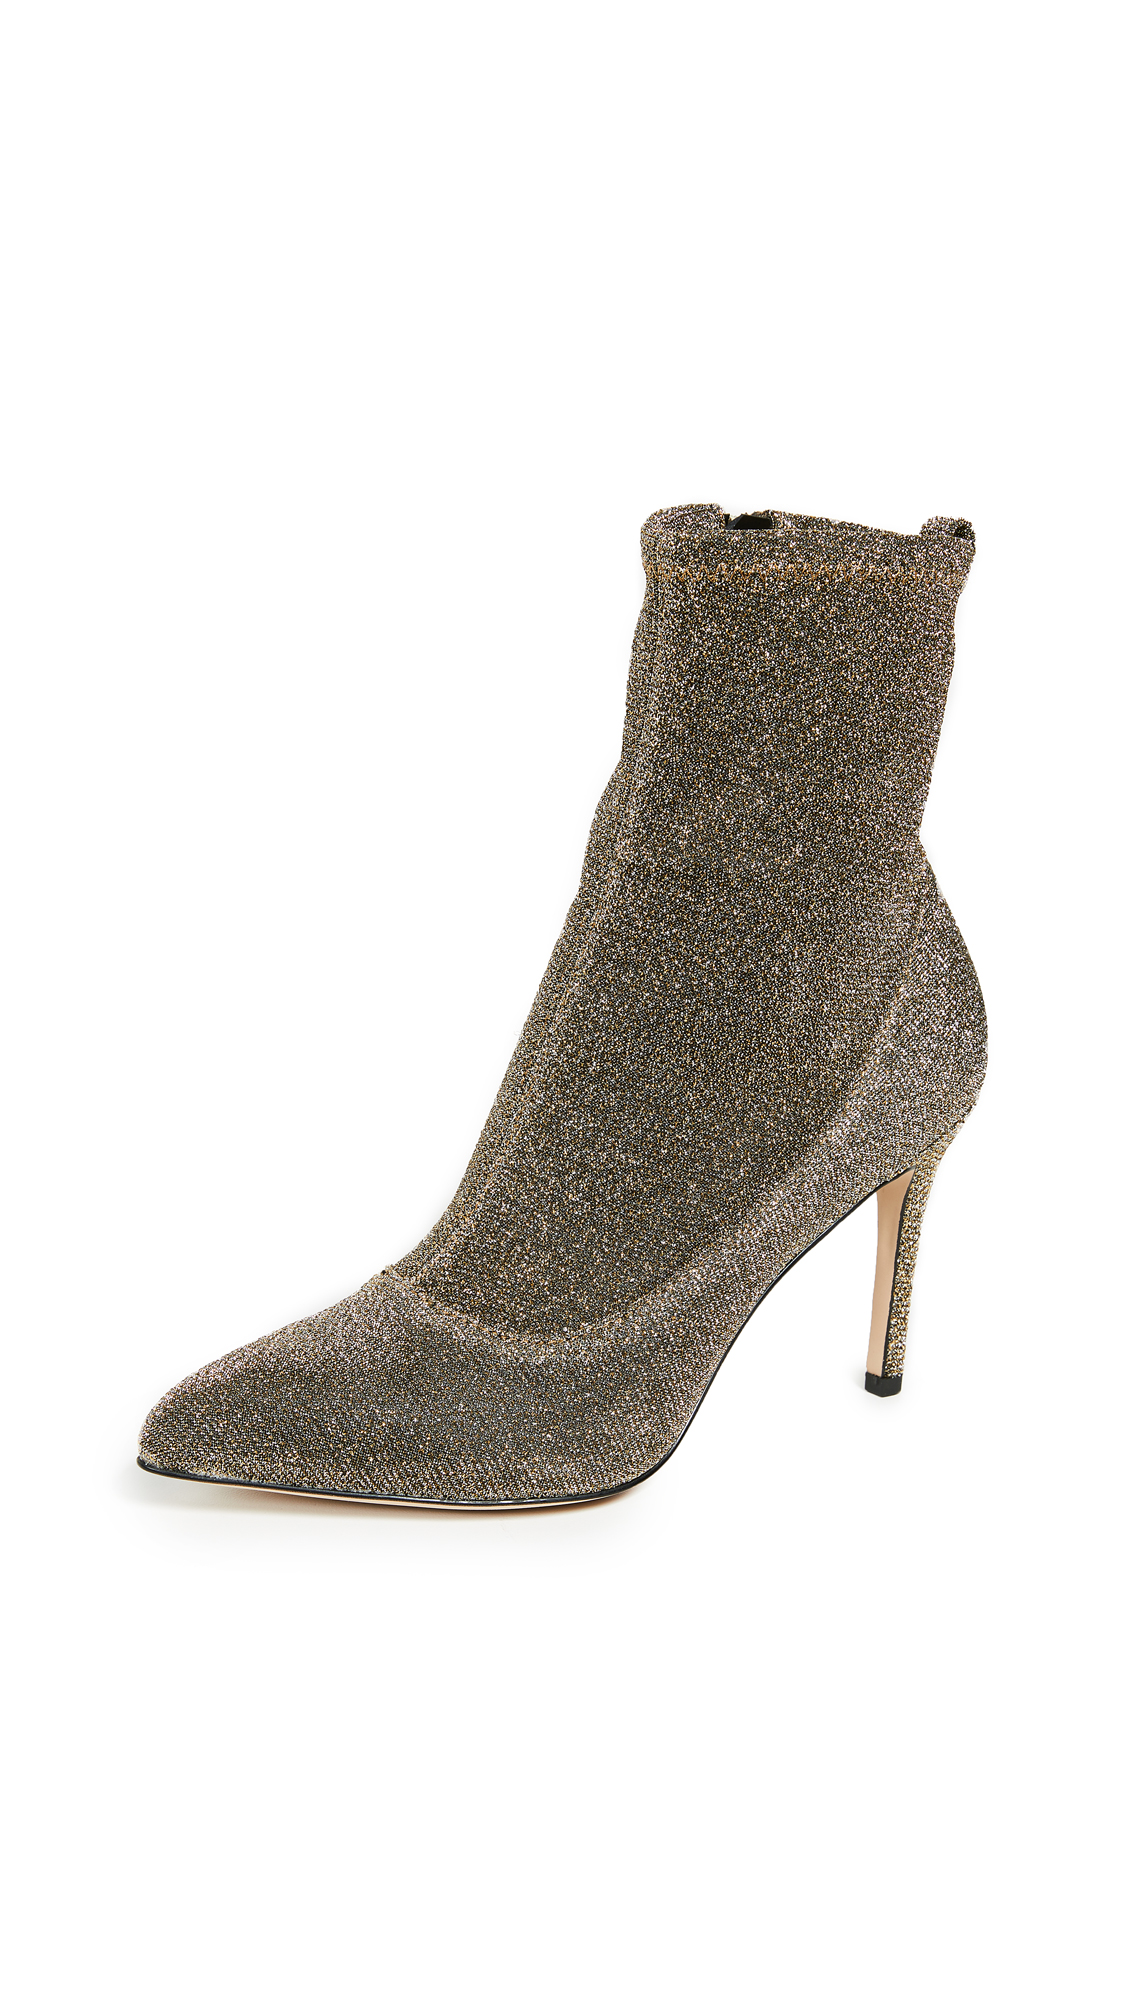 Sam Edelman Olson Sock Booties - Gold Multi